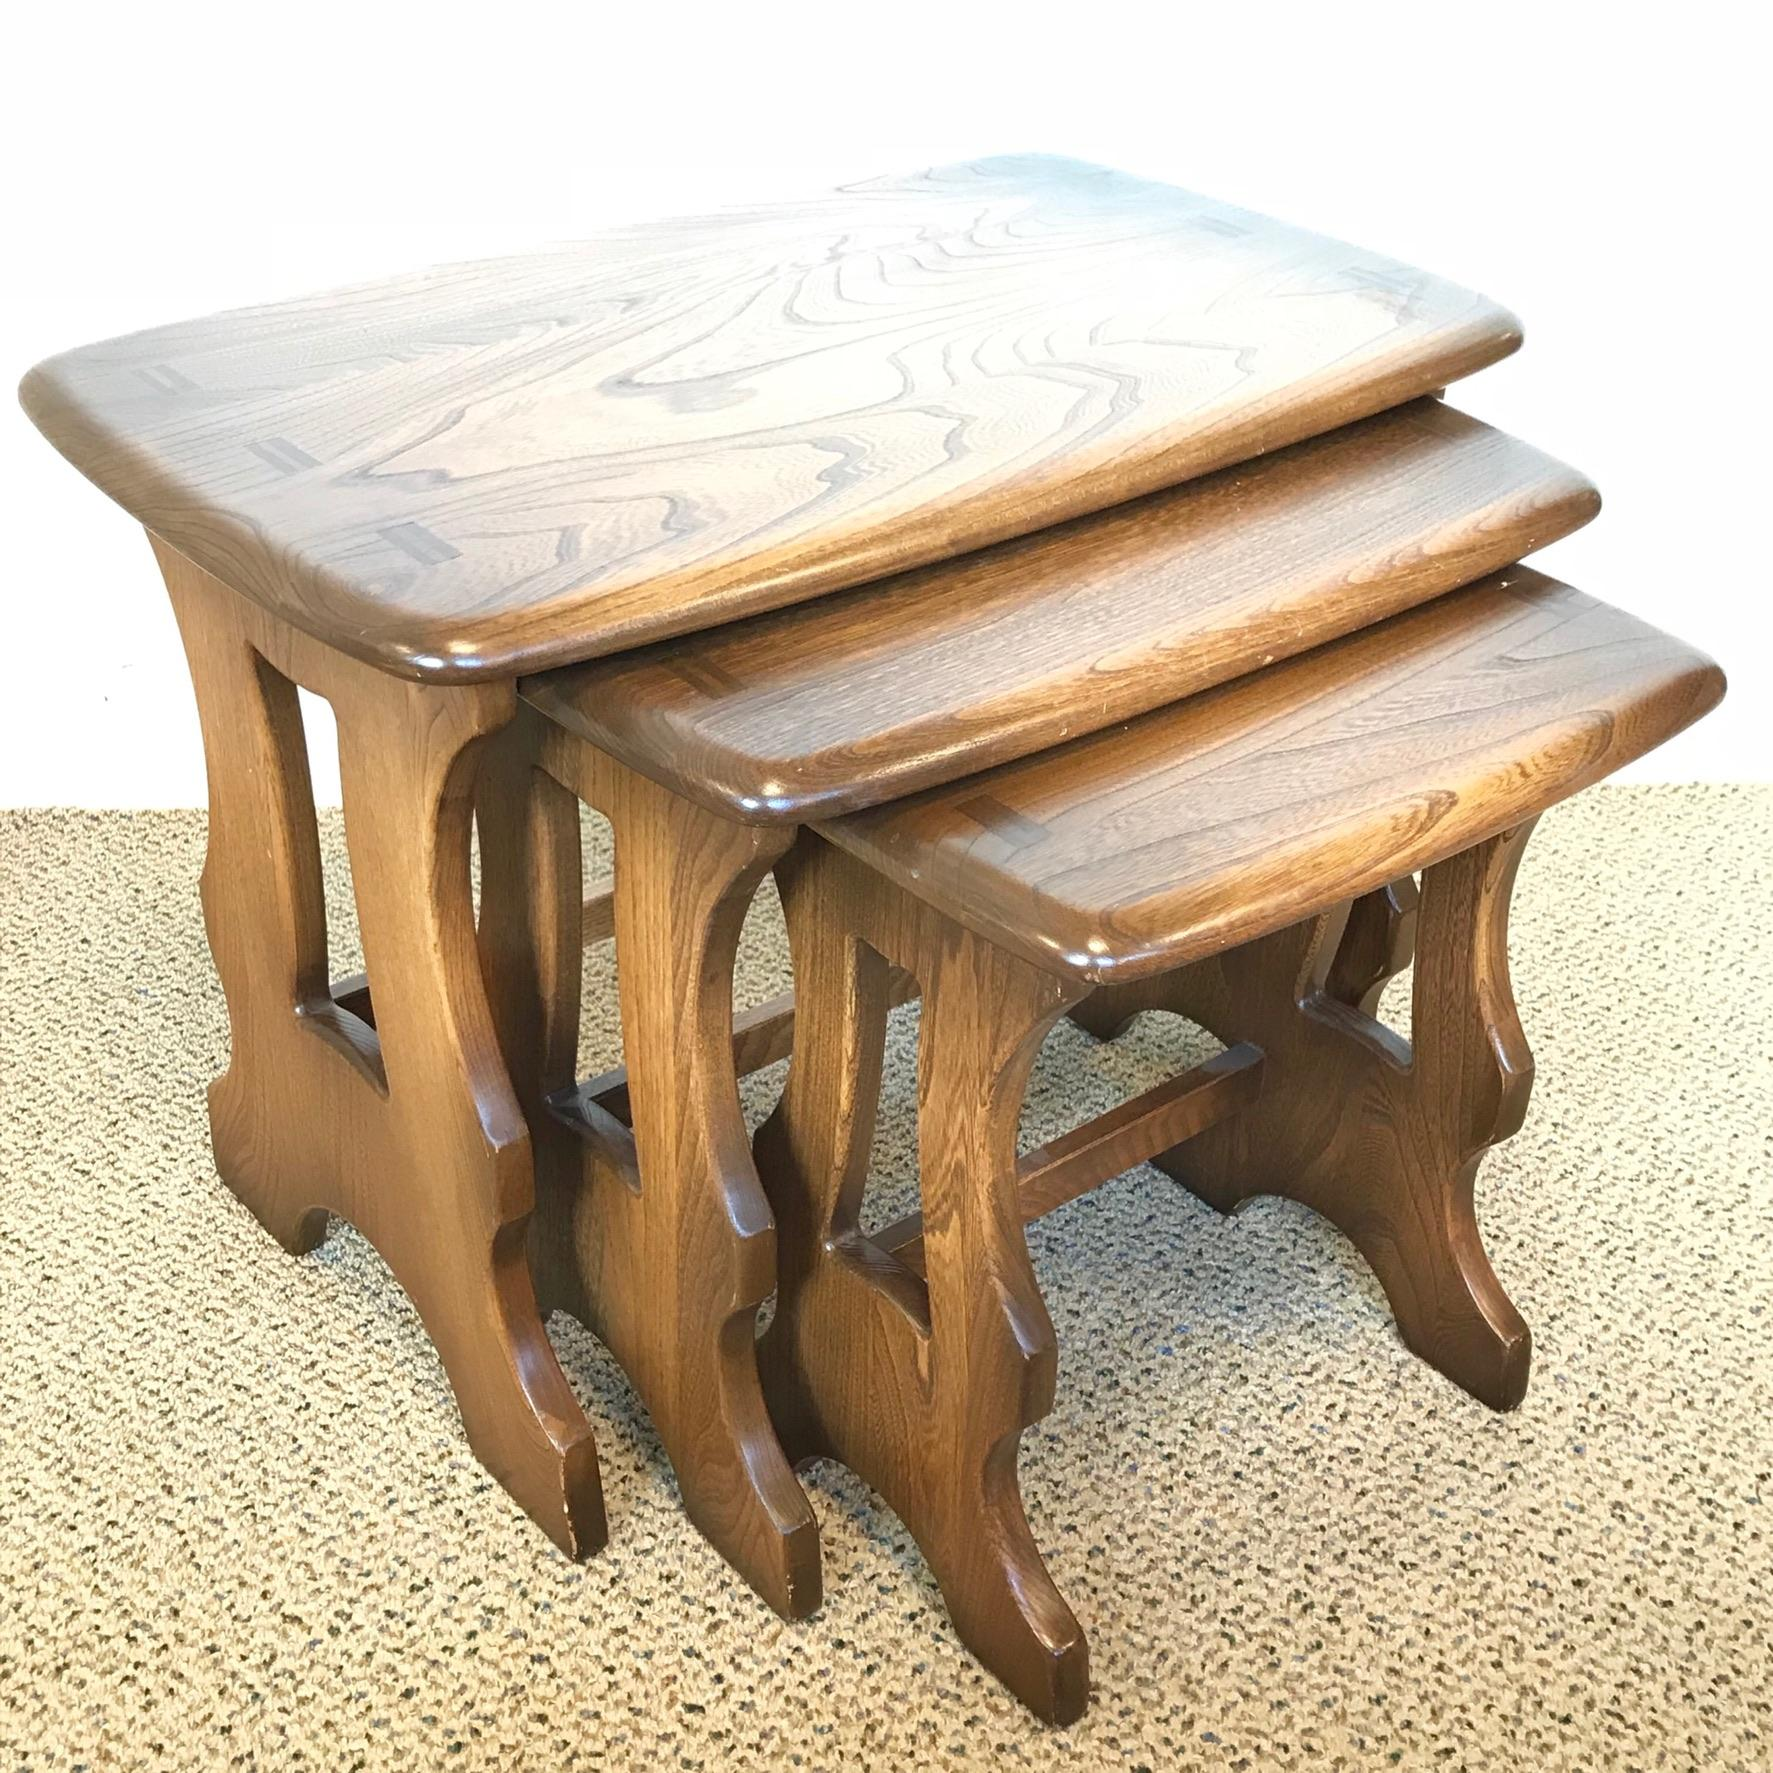 Vintage Ercol Coffee Tables For Sale: Ercol Nest Of Tables